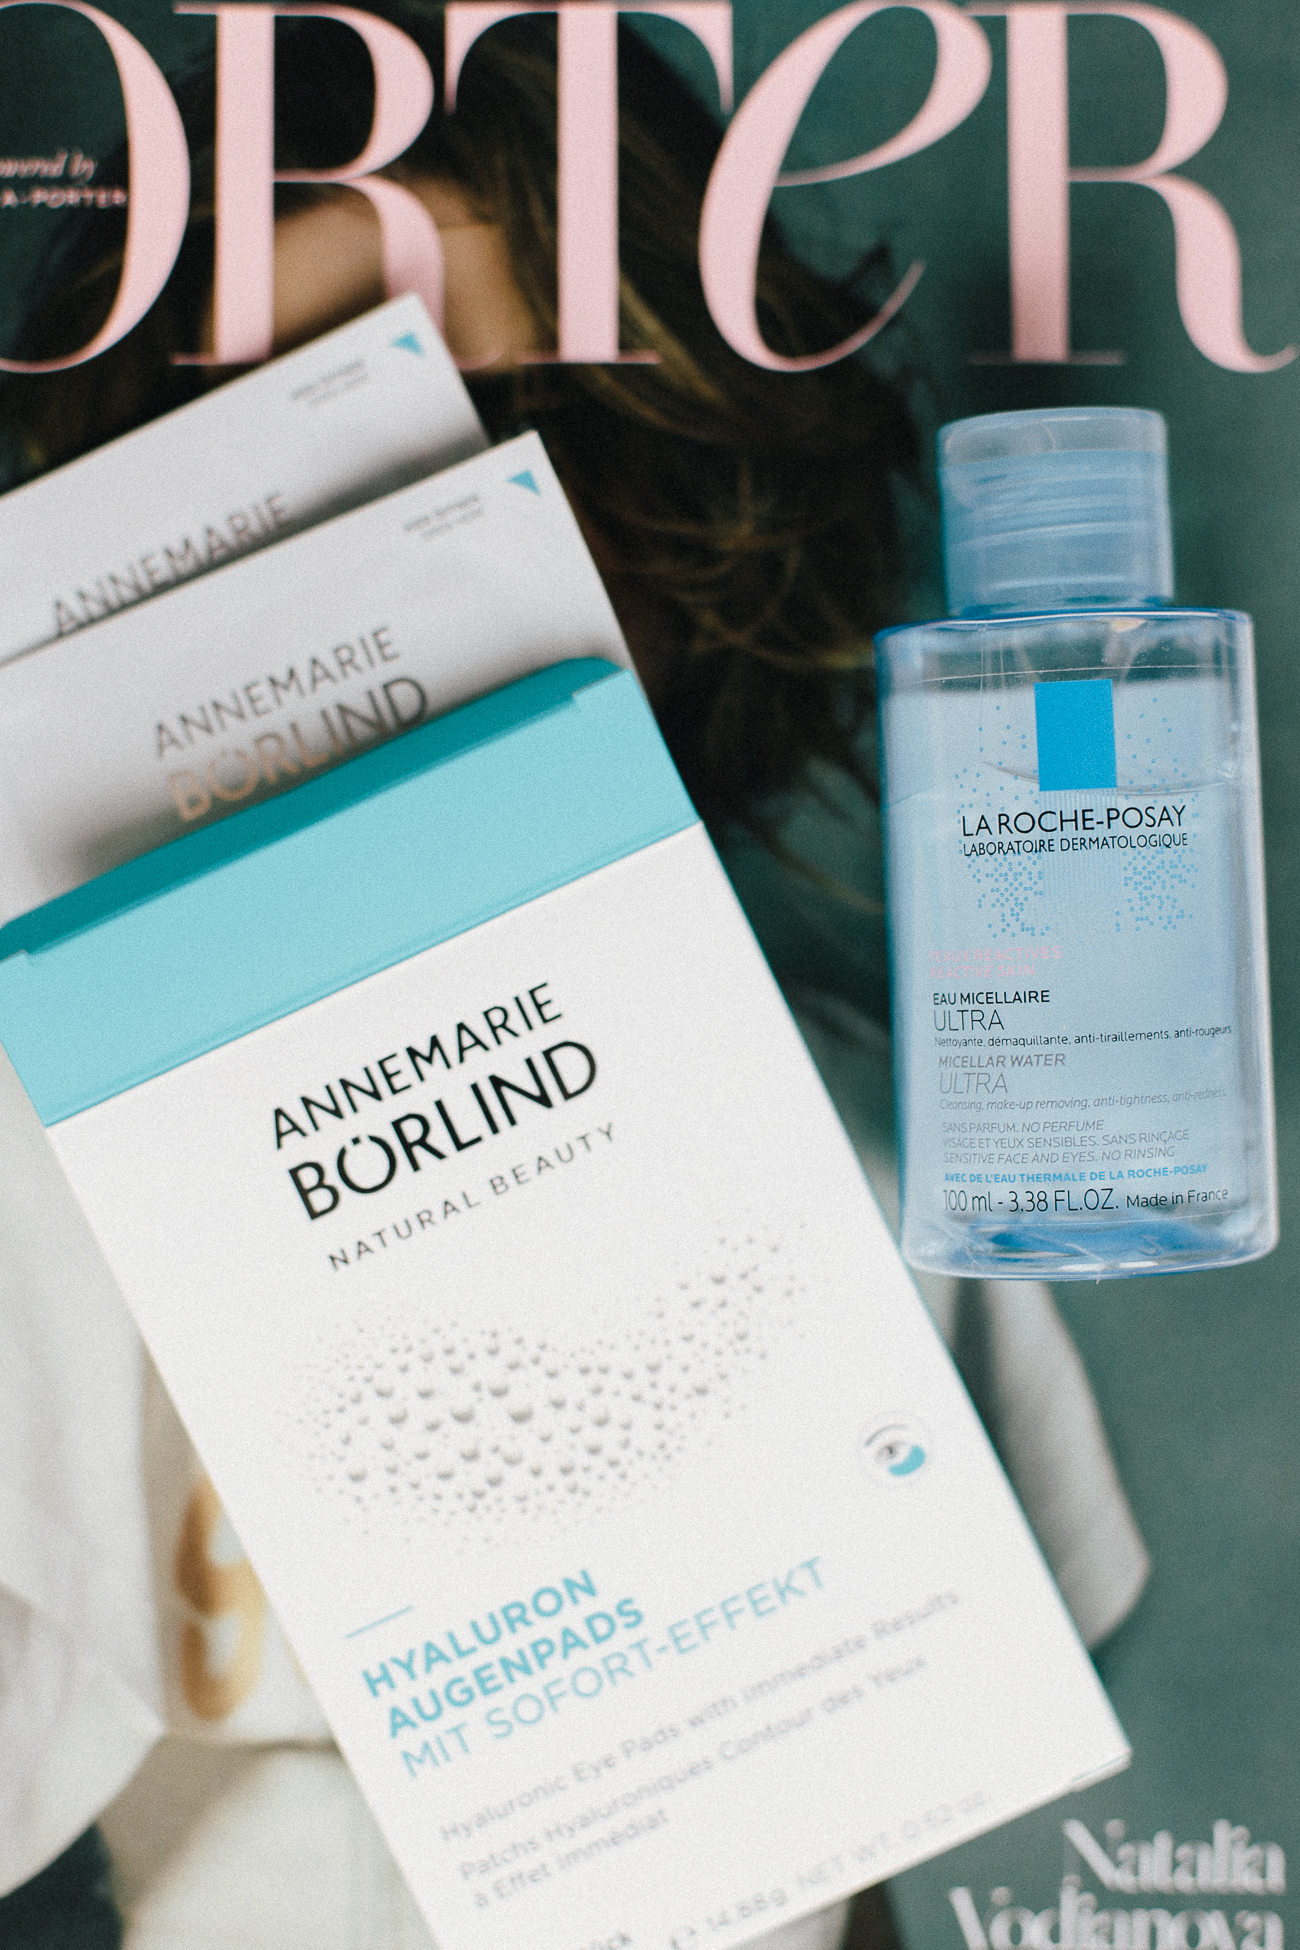 In-Flight Beauty Essentials: Annemarie Börlind Augenpads + Micellar Water | Bikinis & Passports